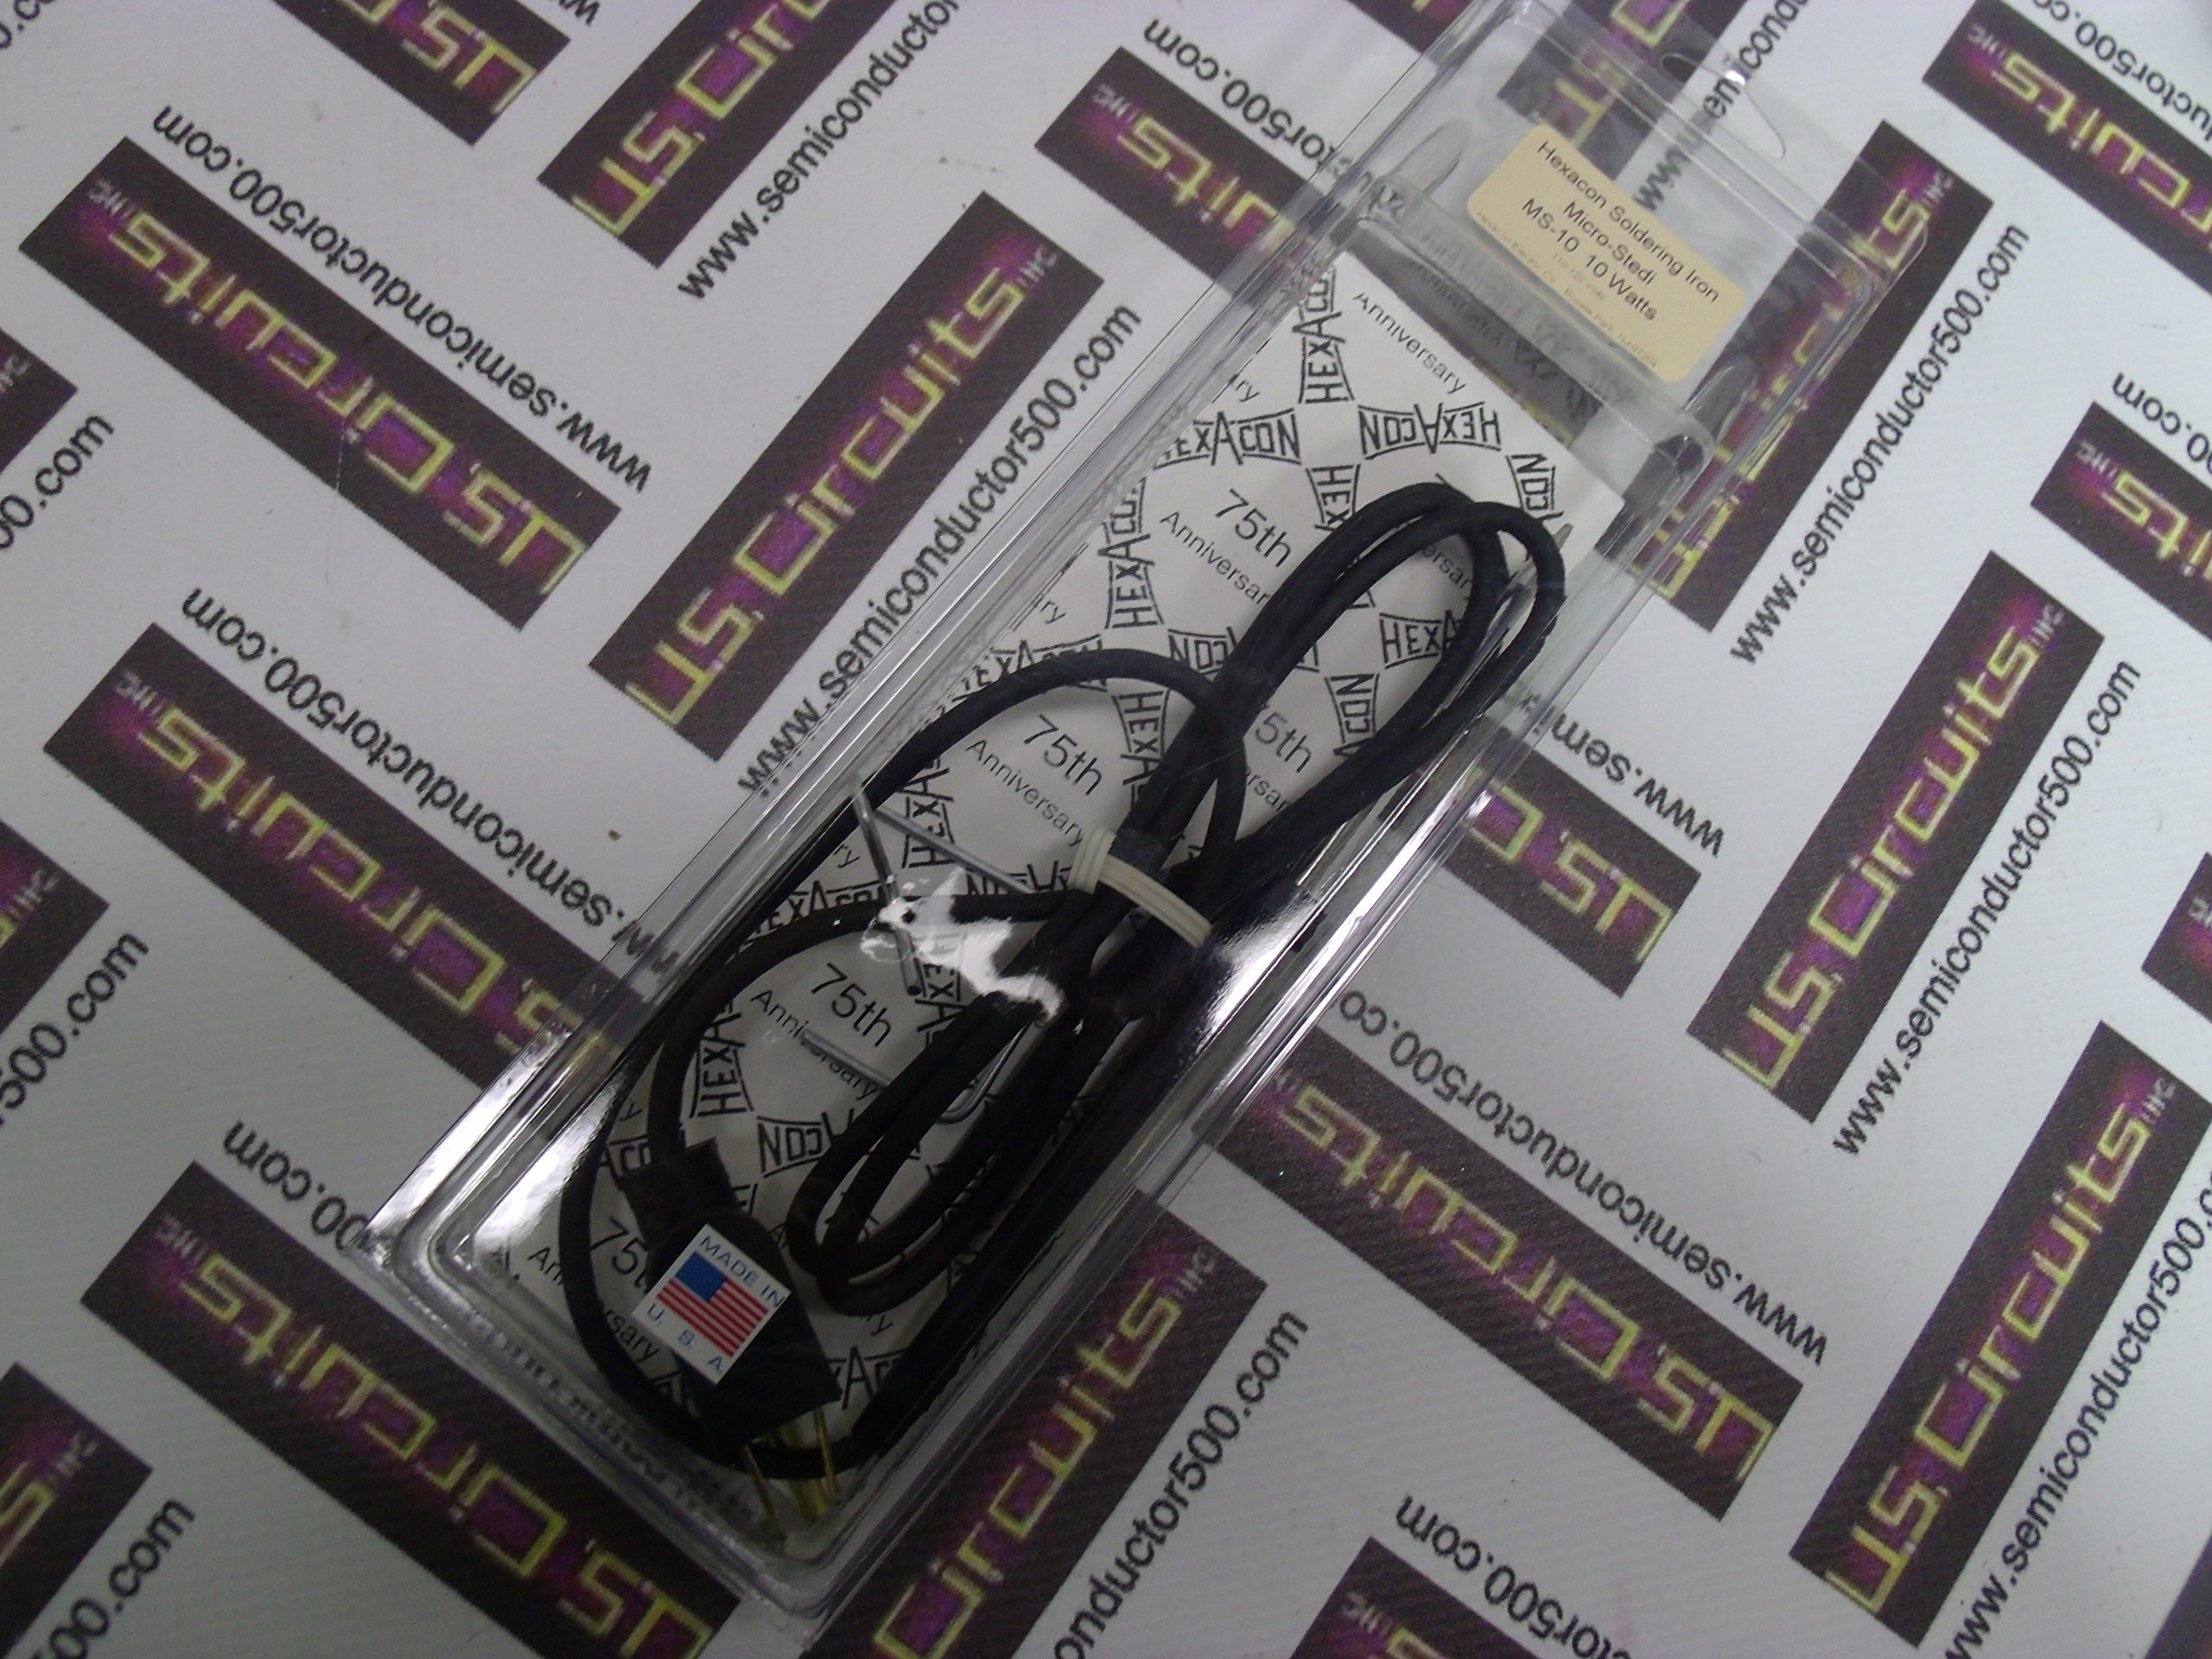 Hexacon Soldering Iron Micro-Stedi MS-10 10W 110-120V MADE IN THE USA. by Hexacon